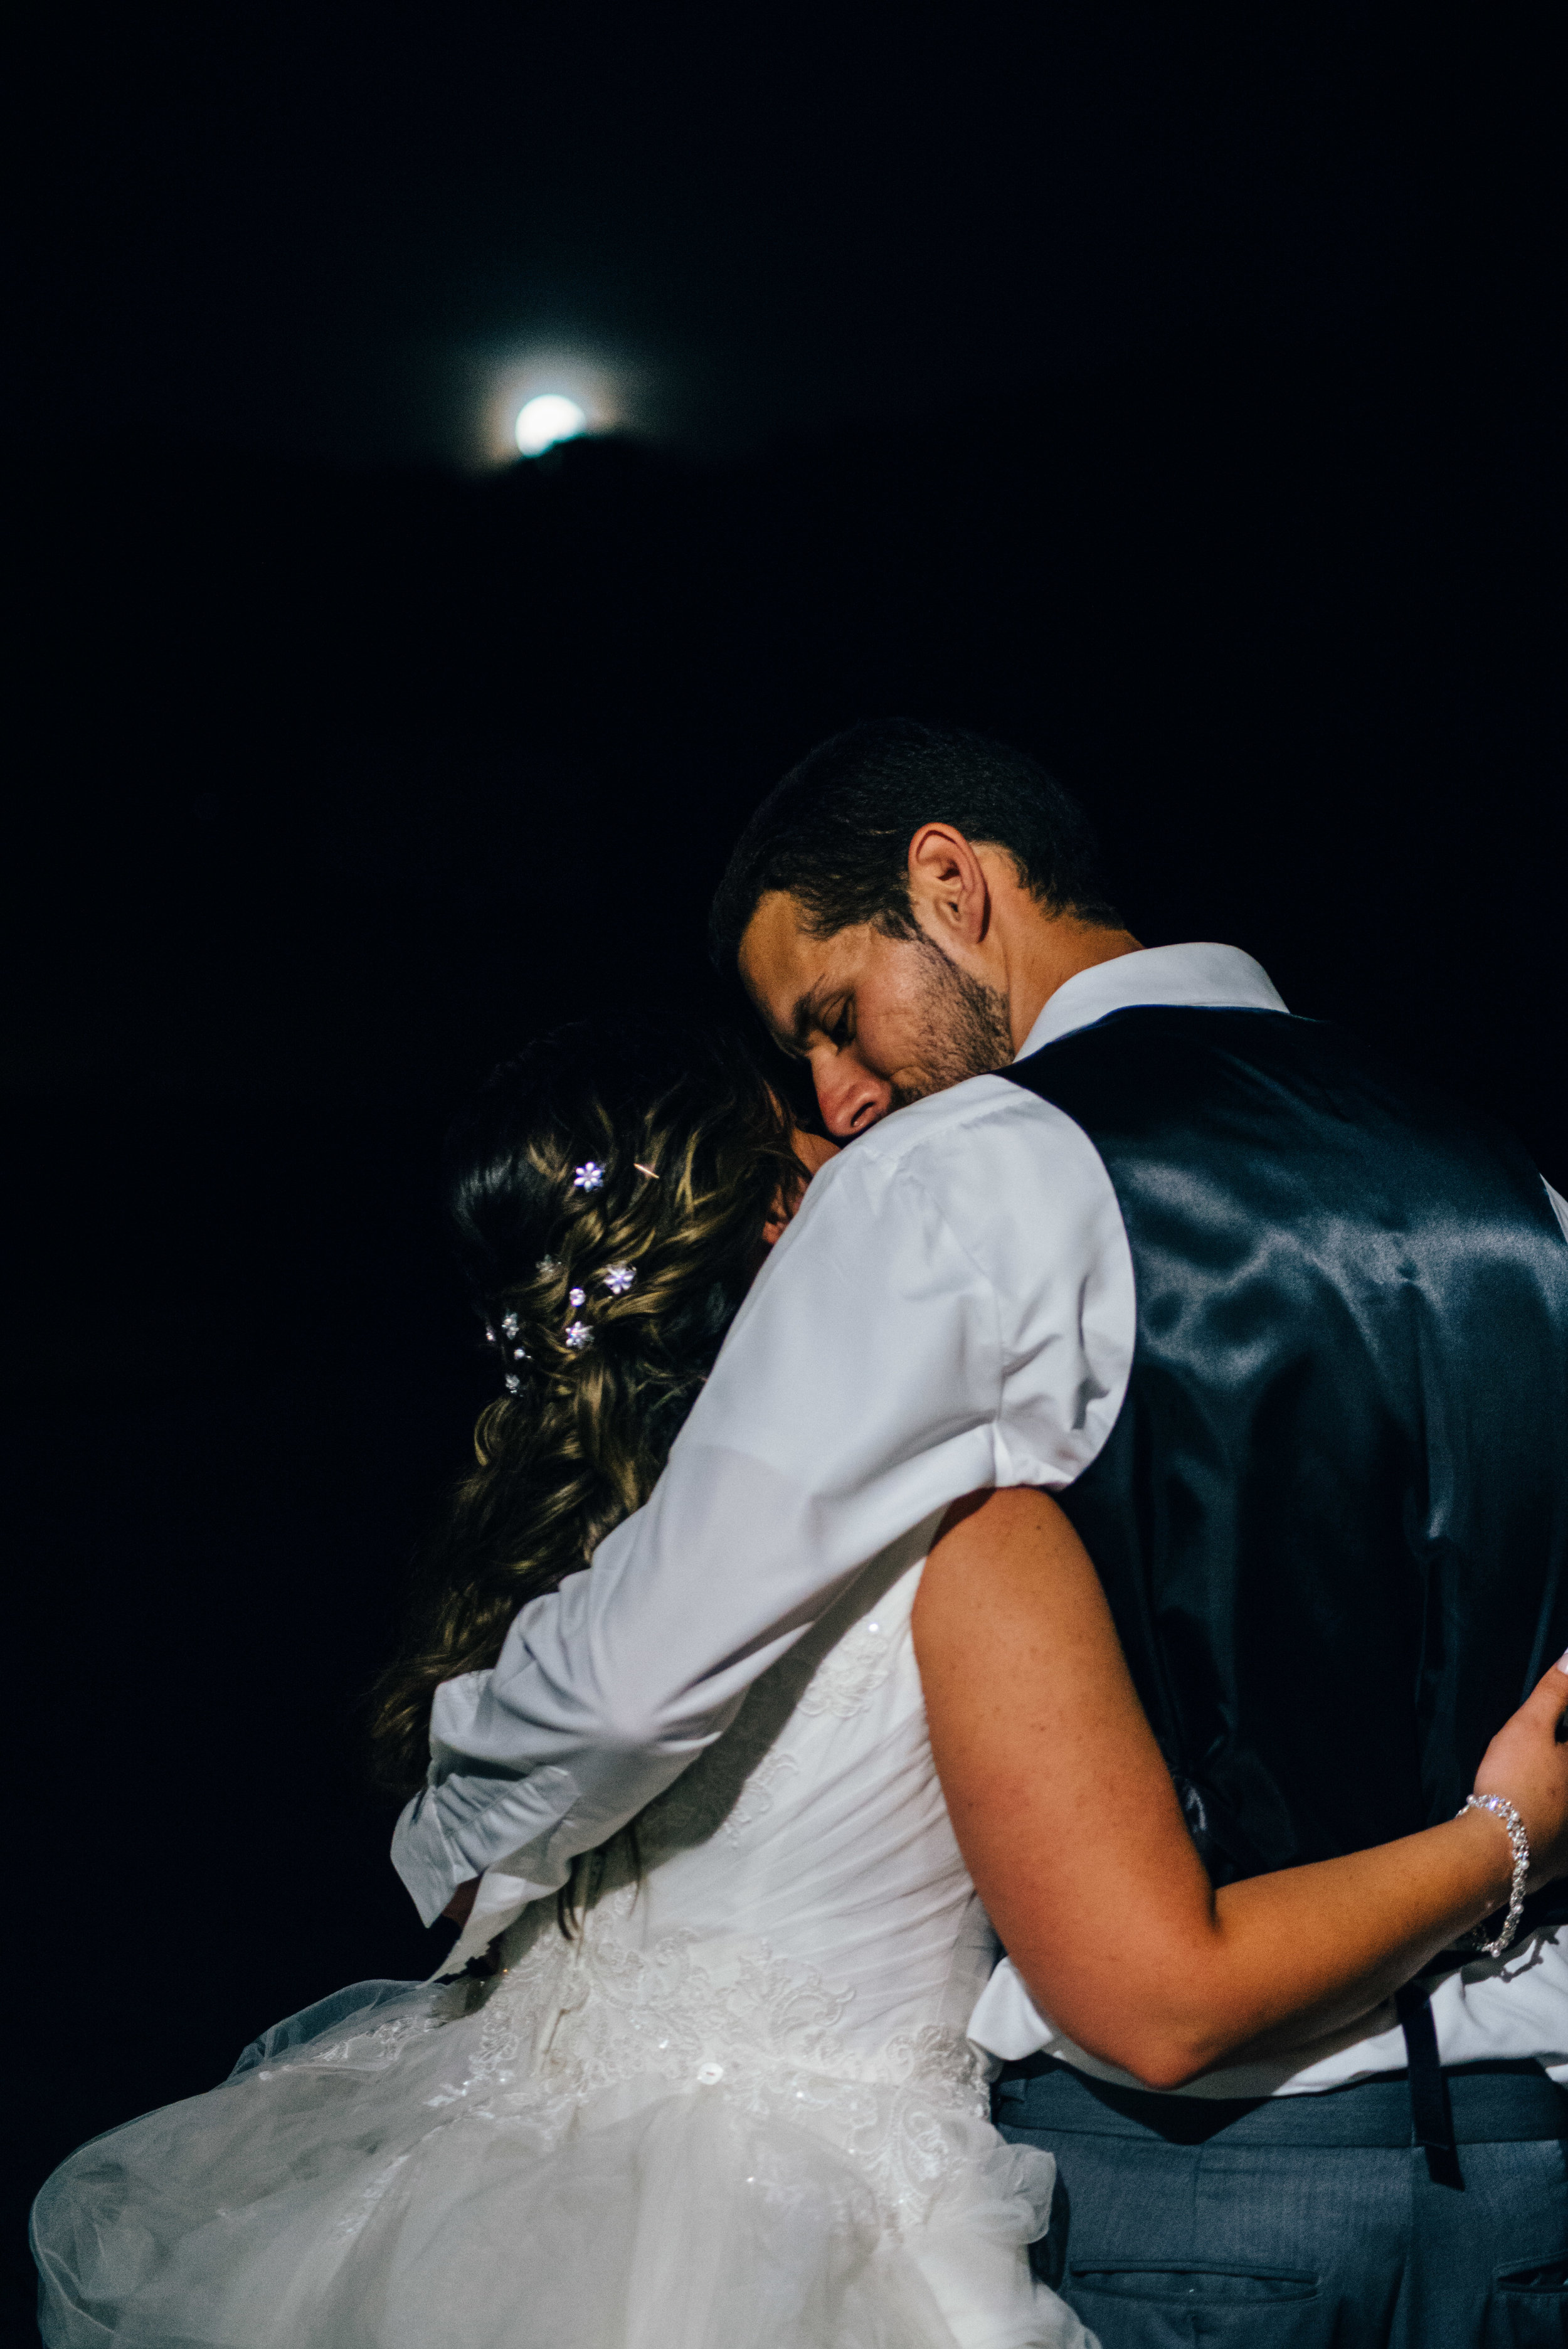 Bride and groom hug from behind under a harvest moon at The Farm on the Ridge in Hooversville PA